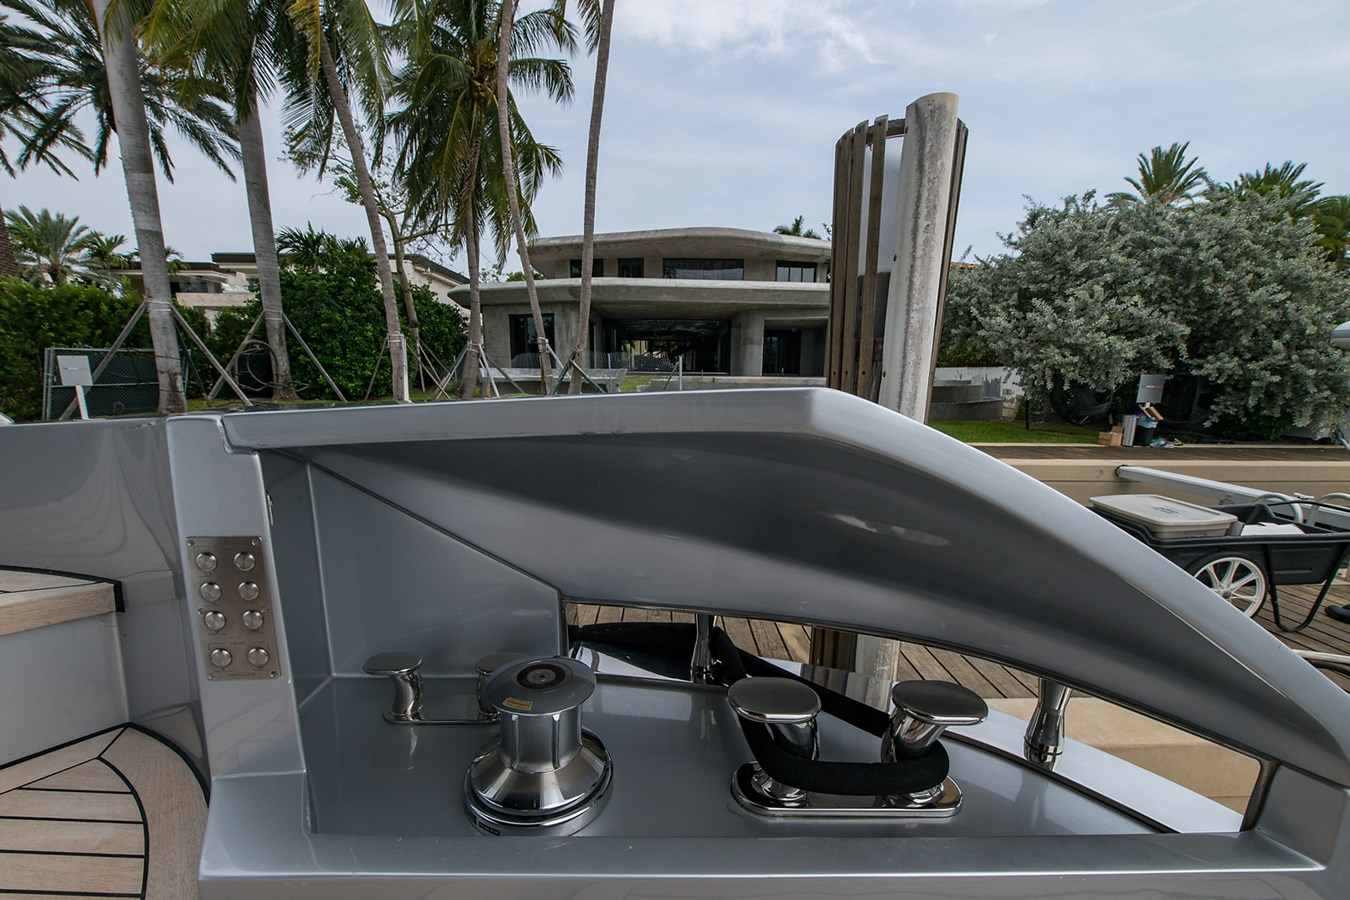 Incognito_Aft deck21 2012 PERSHING  Motor Yacht 2810236